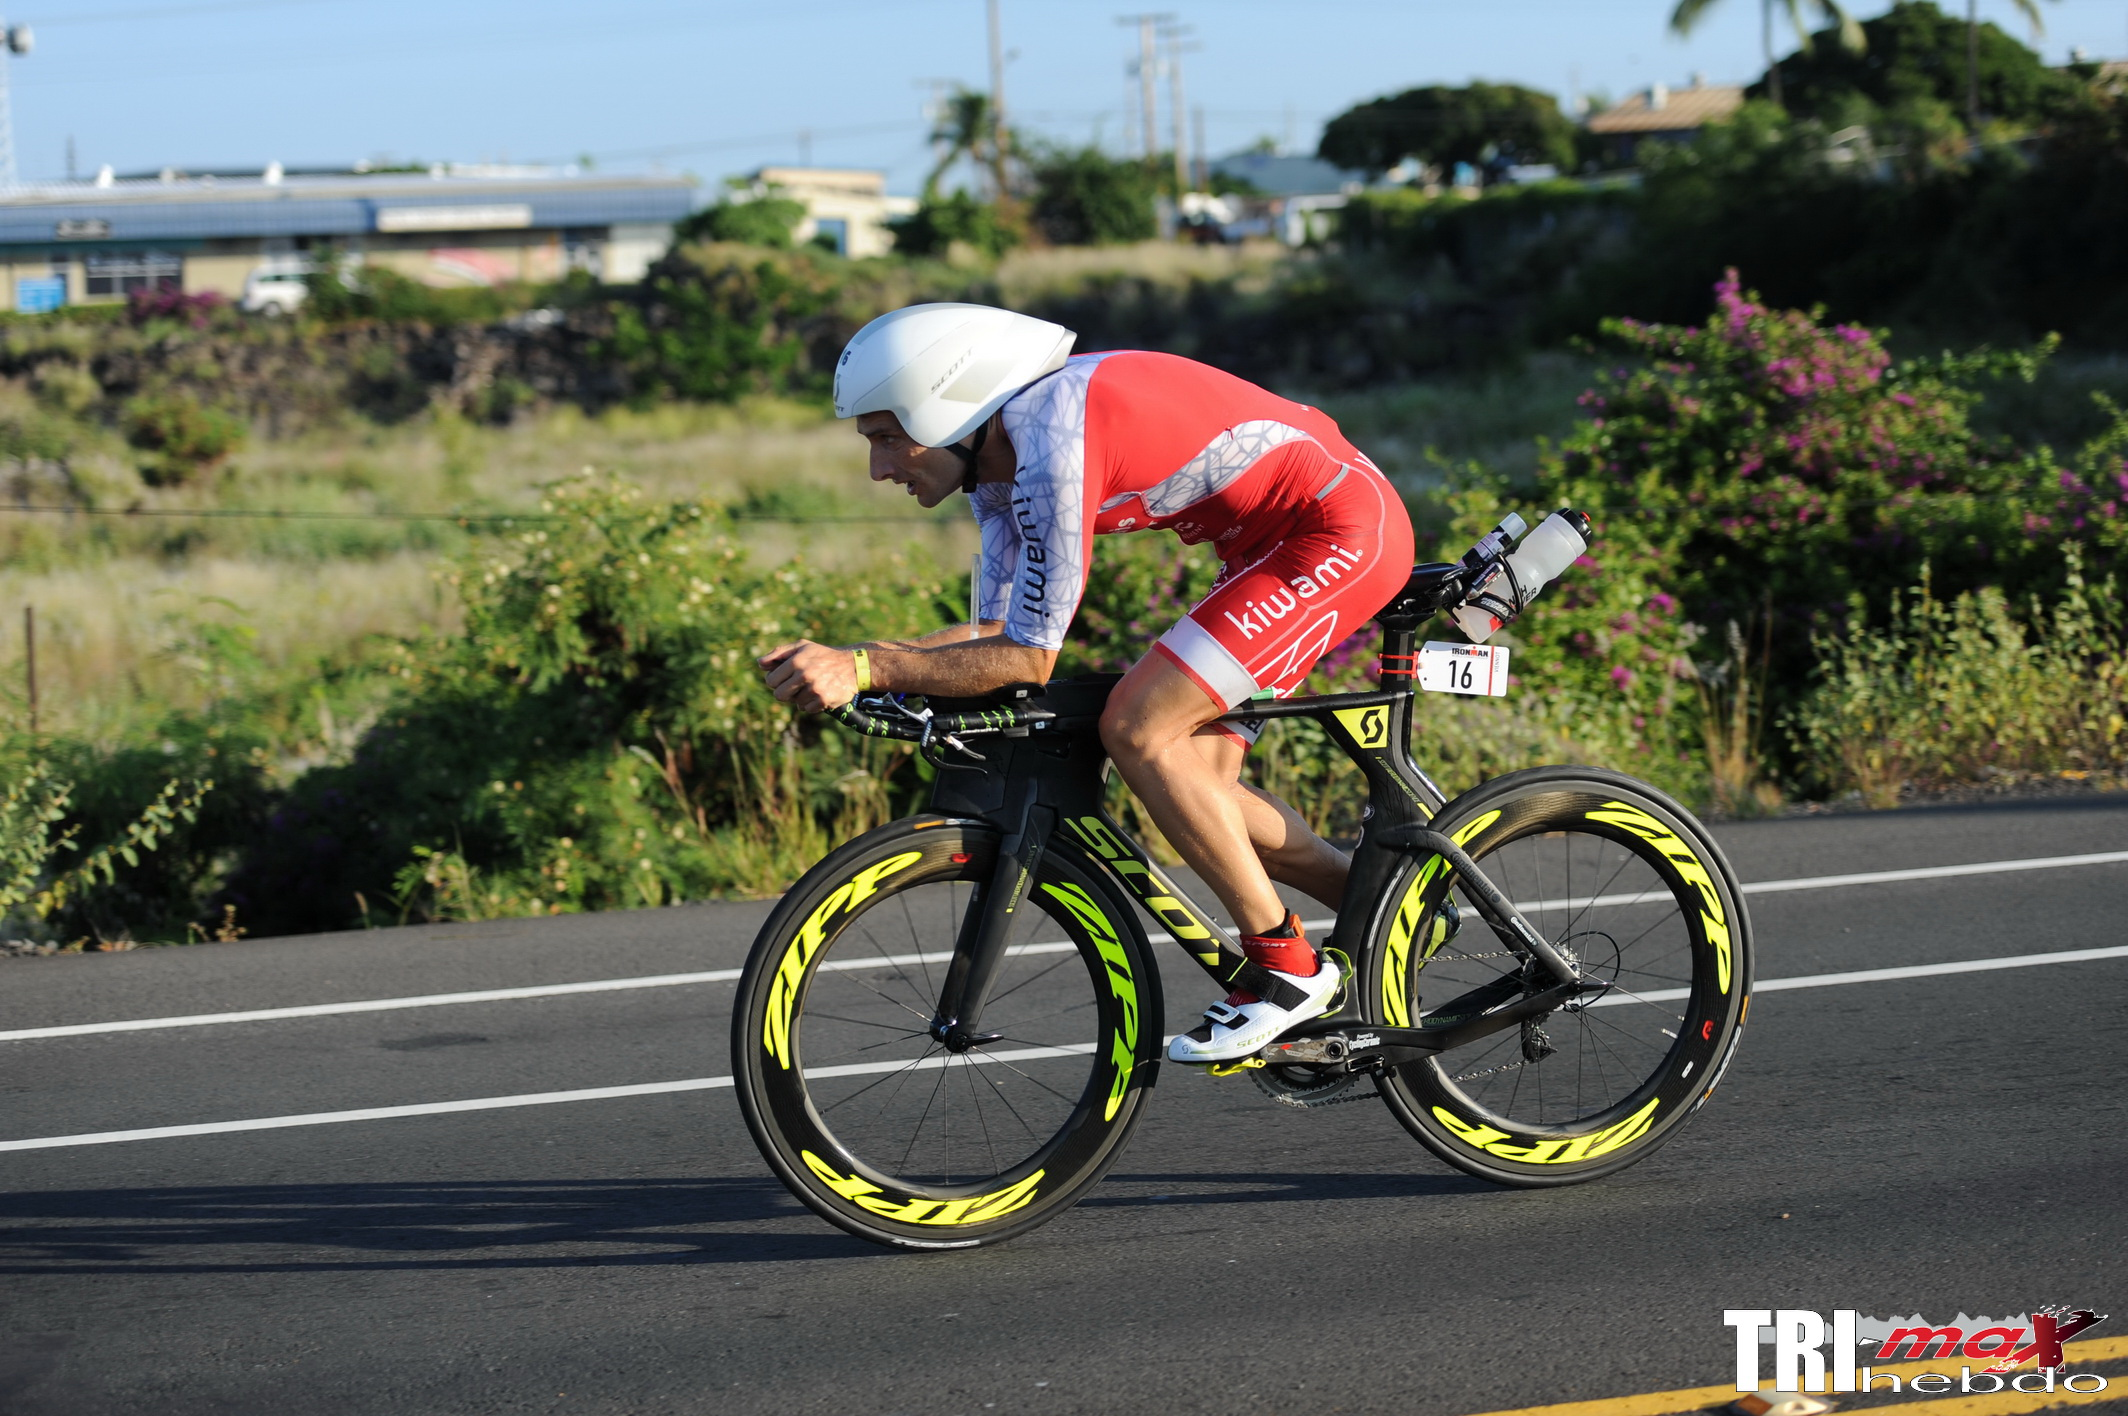 IRONMAN WORLD CHAMPIONSHIP HAWAI: La confirmation de Cyril VIENNOT dans le TOP 6 mondial‏